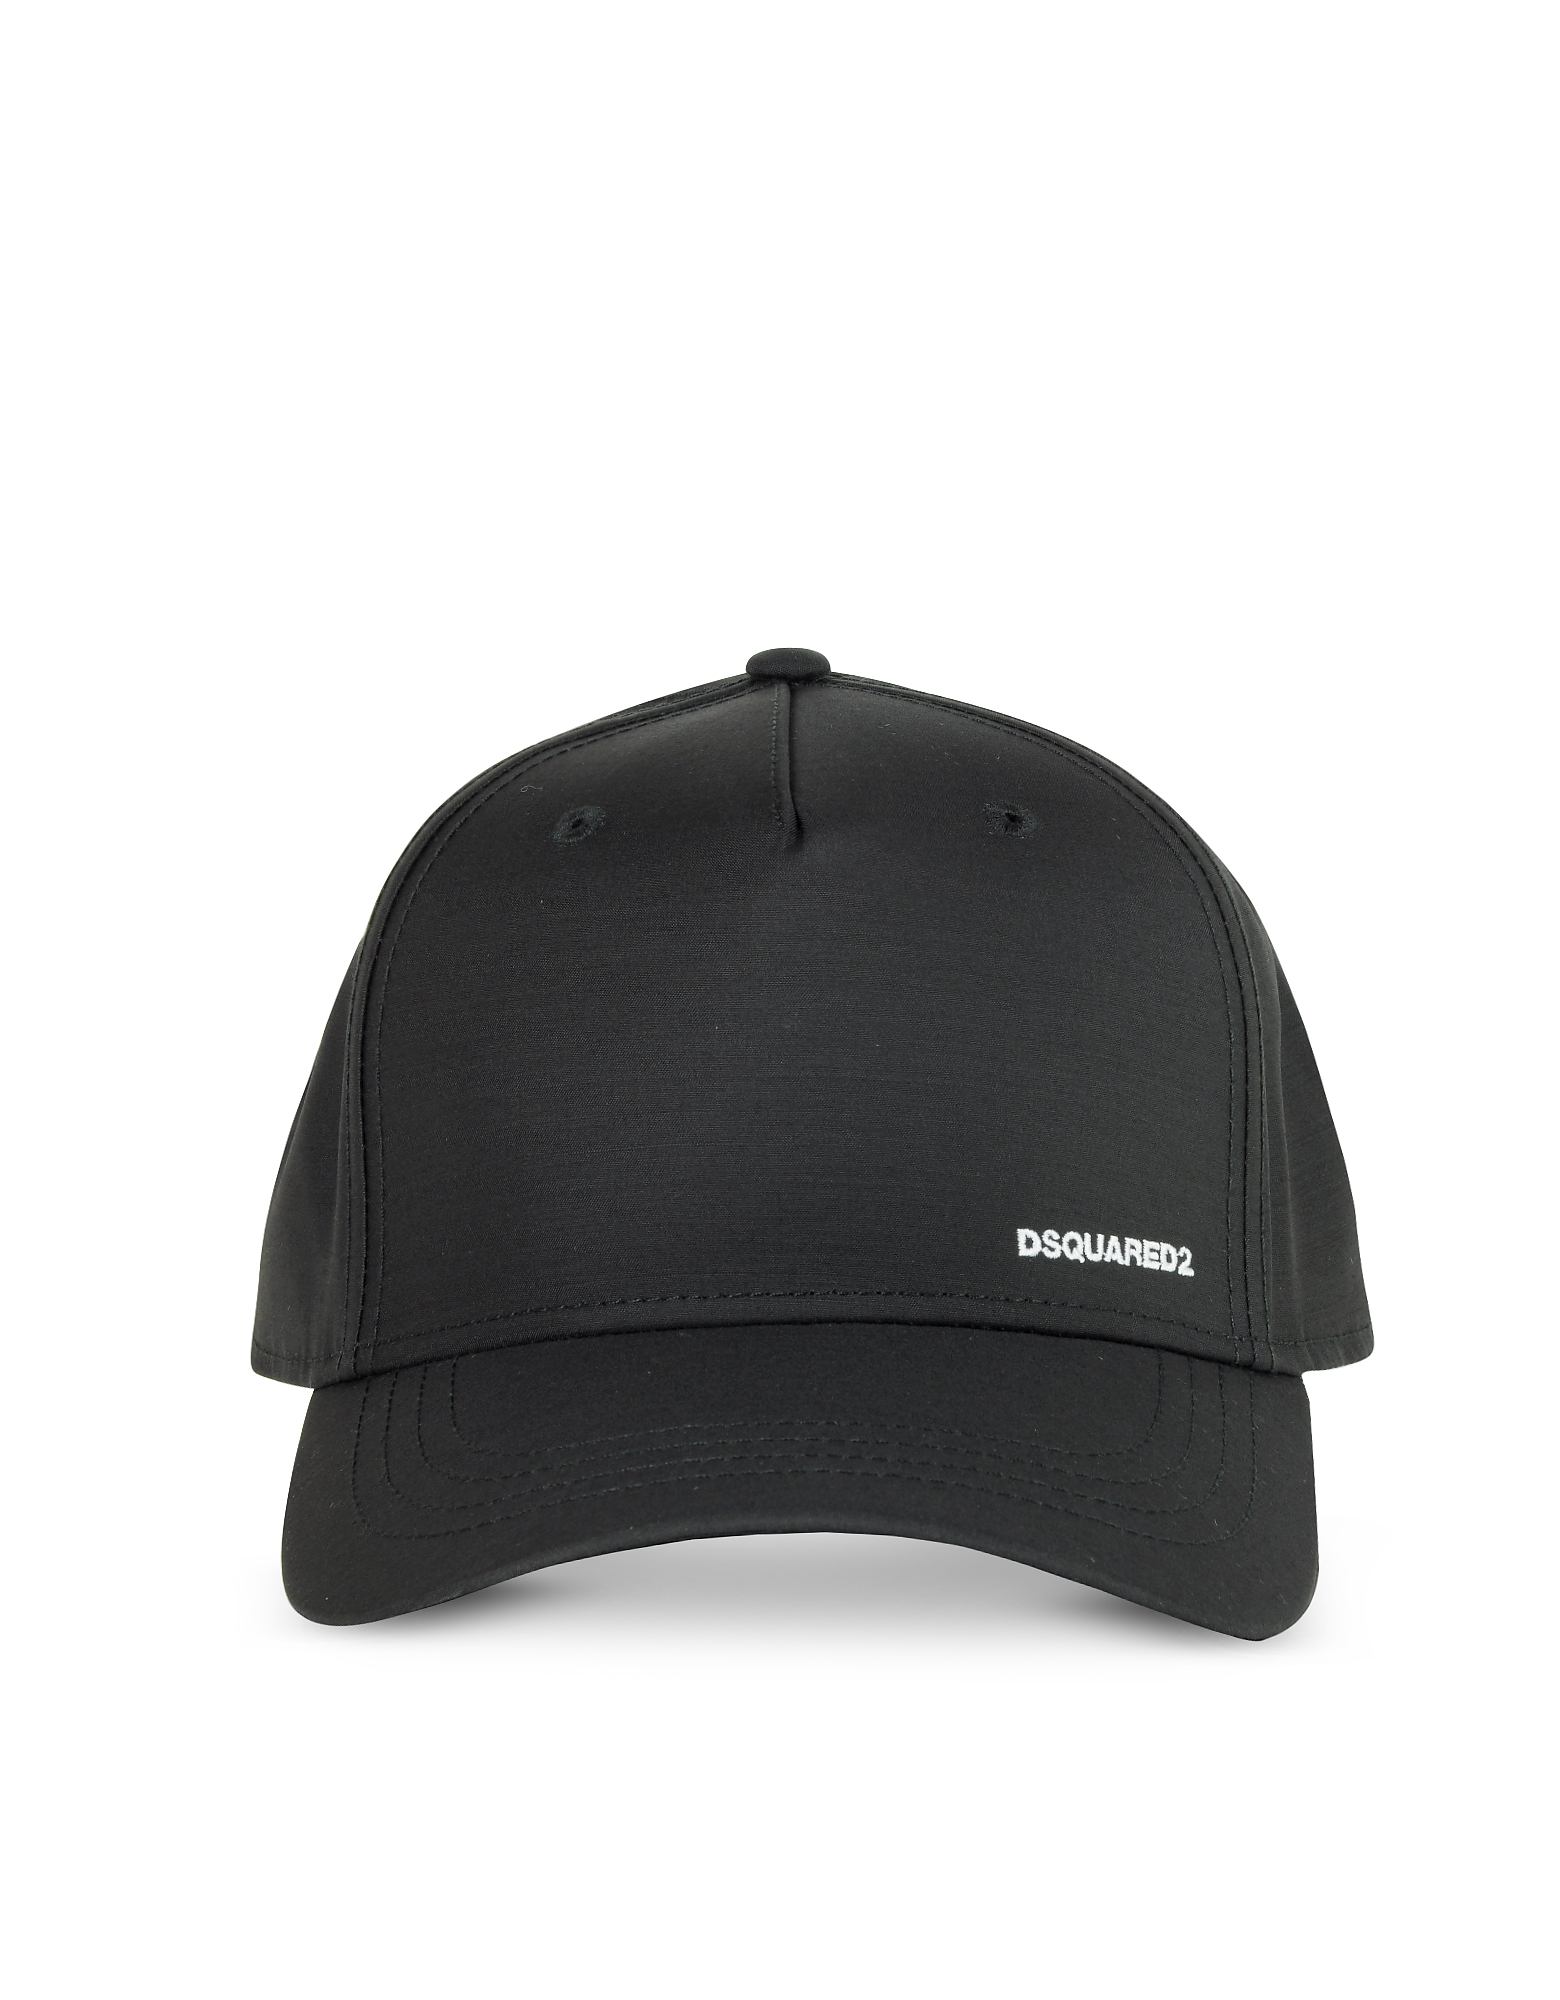 DSquared2 Designer Men's Hats, Men's Black Canvas Baseball Cap